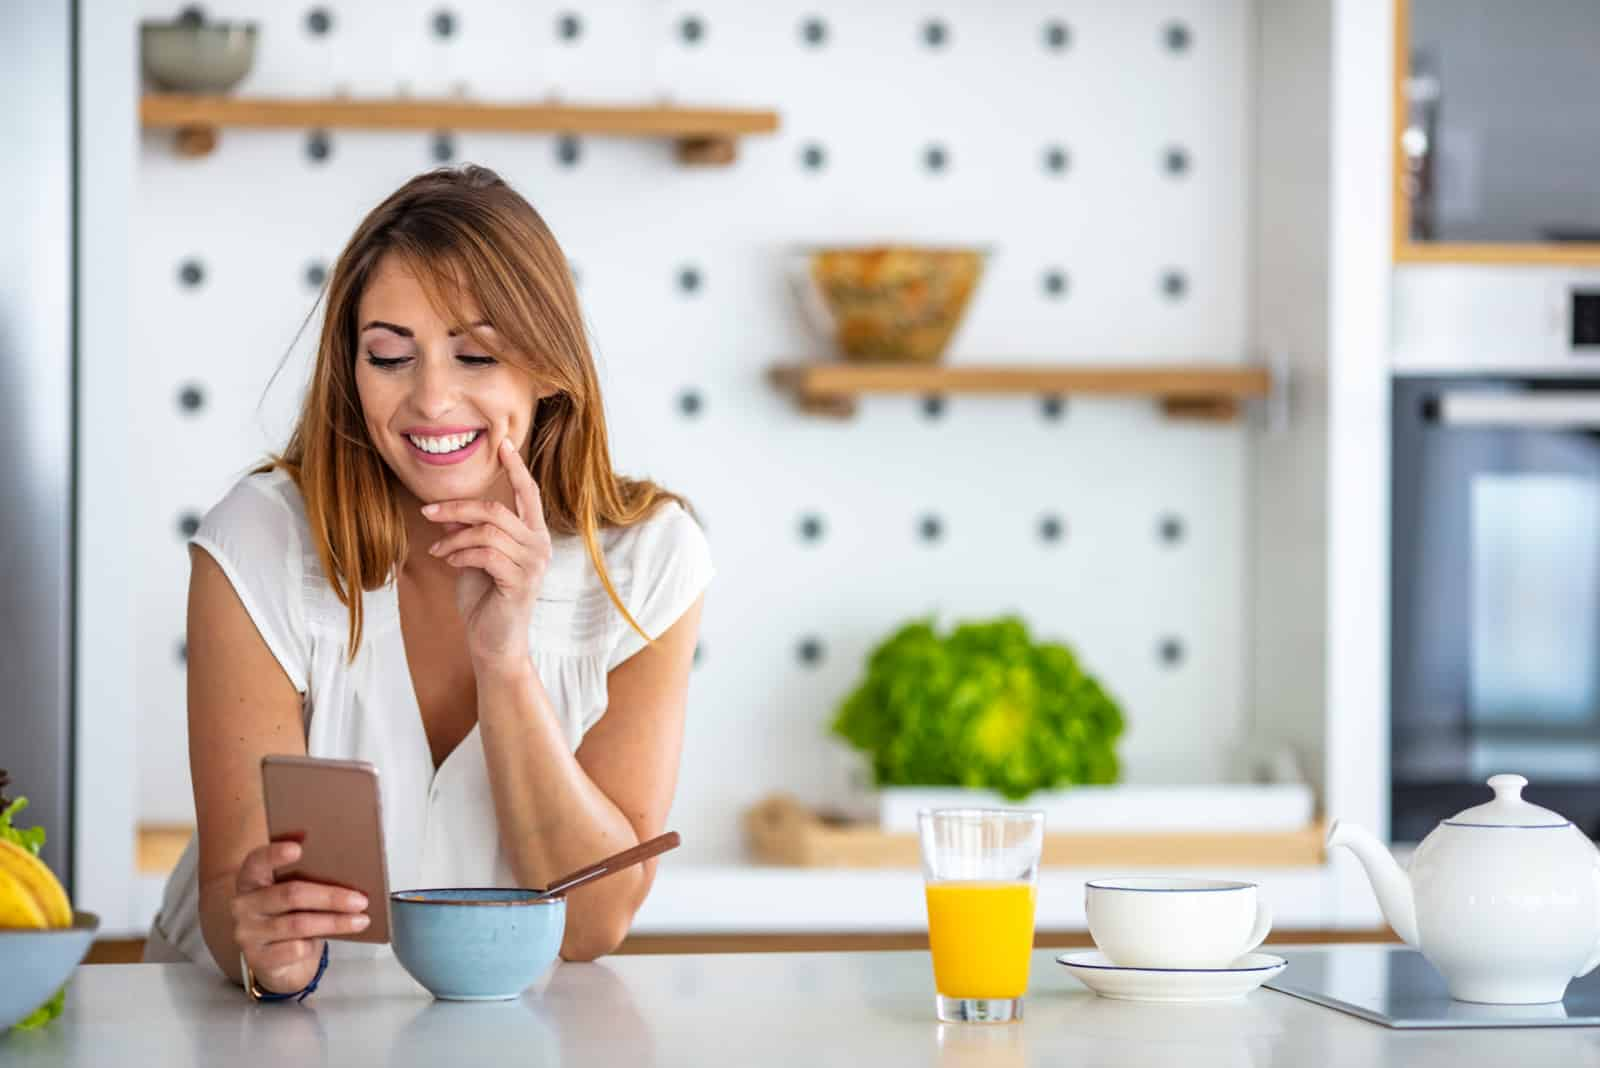 smiling woman in the kitchen button on the phone